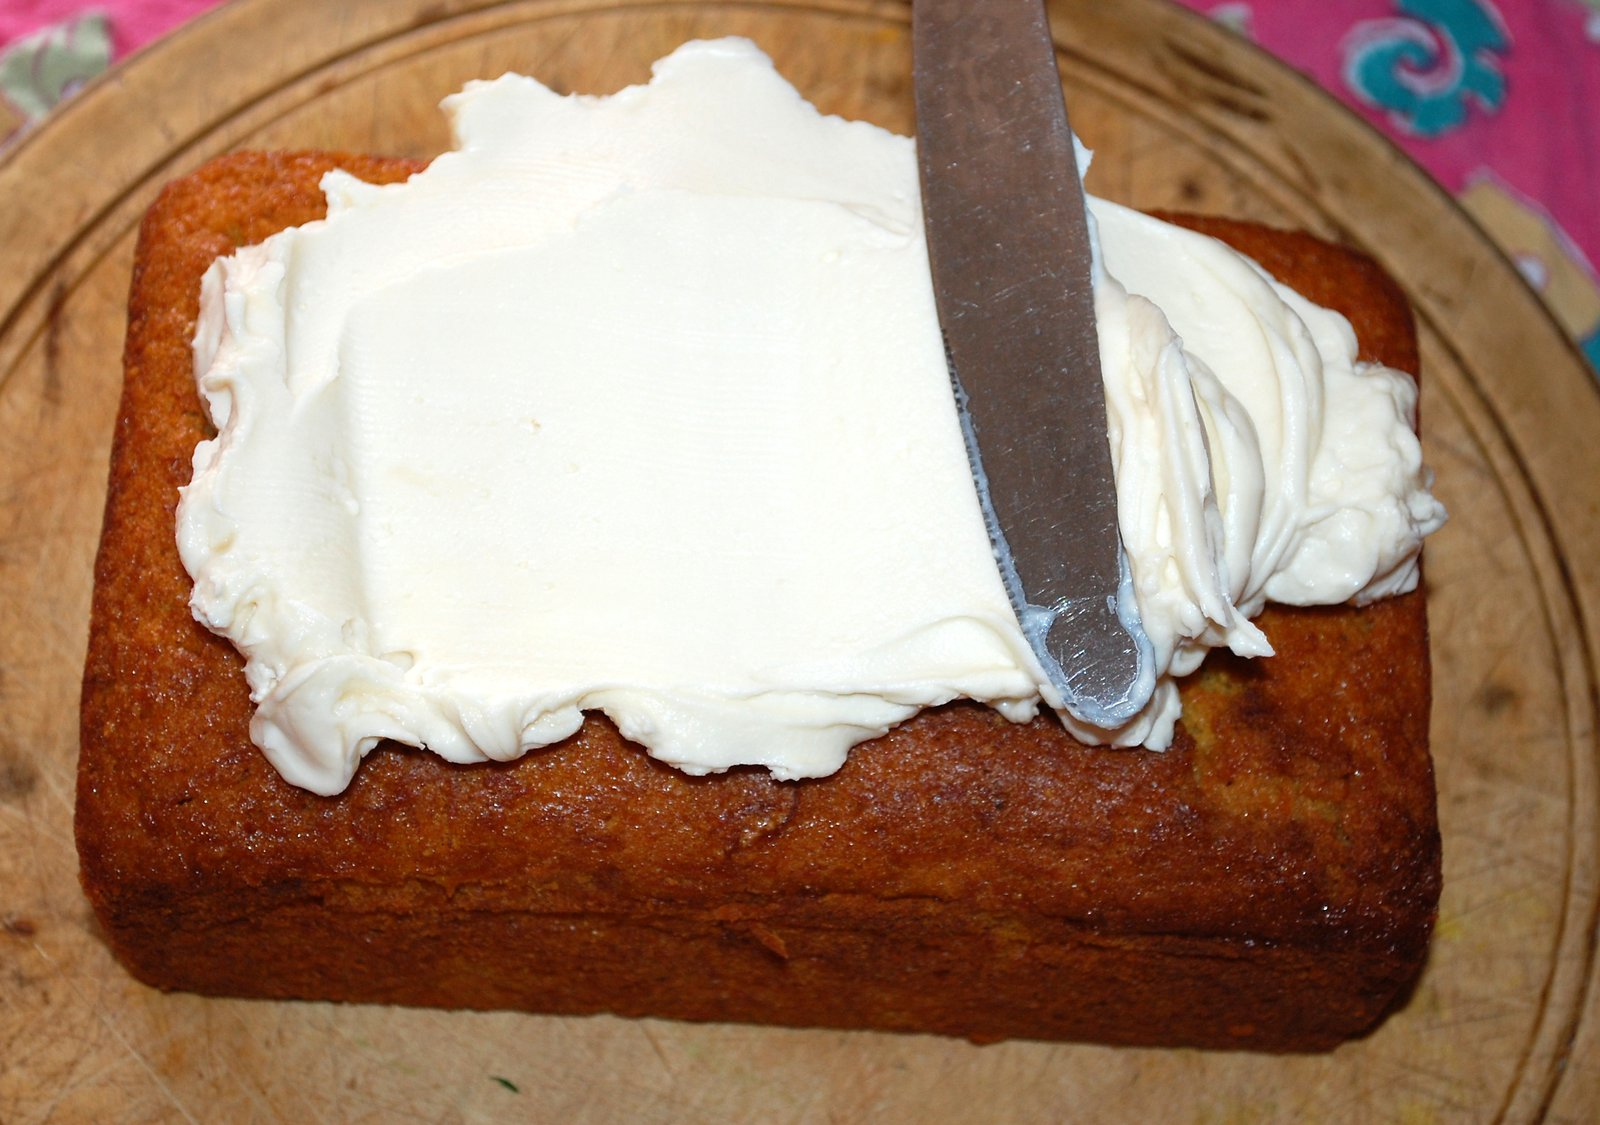 Spread The Mascarpone Icing Over The Carrot Cake